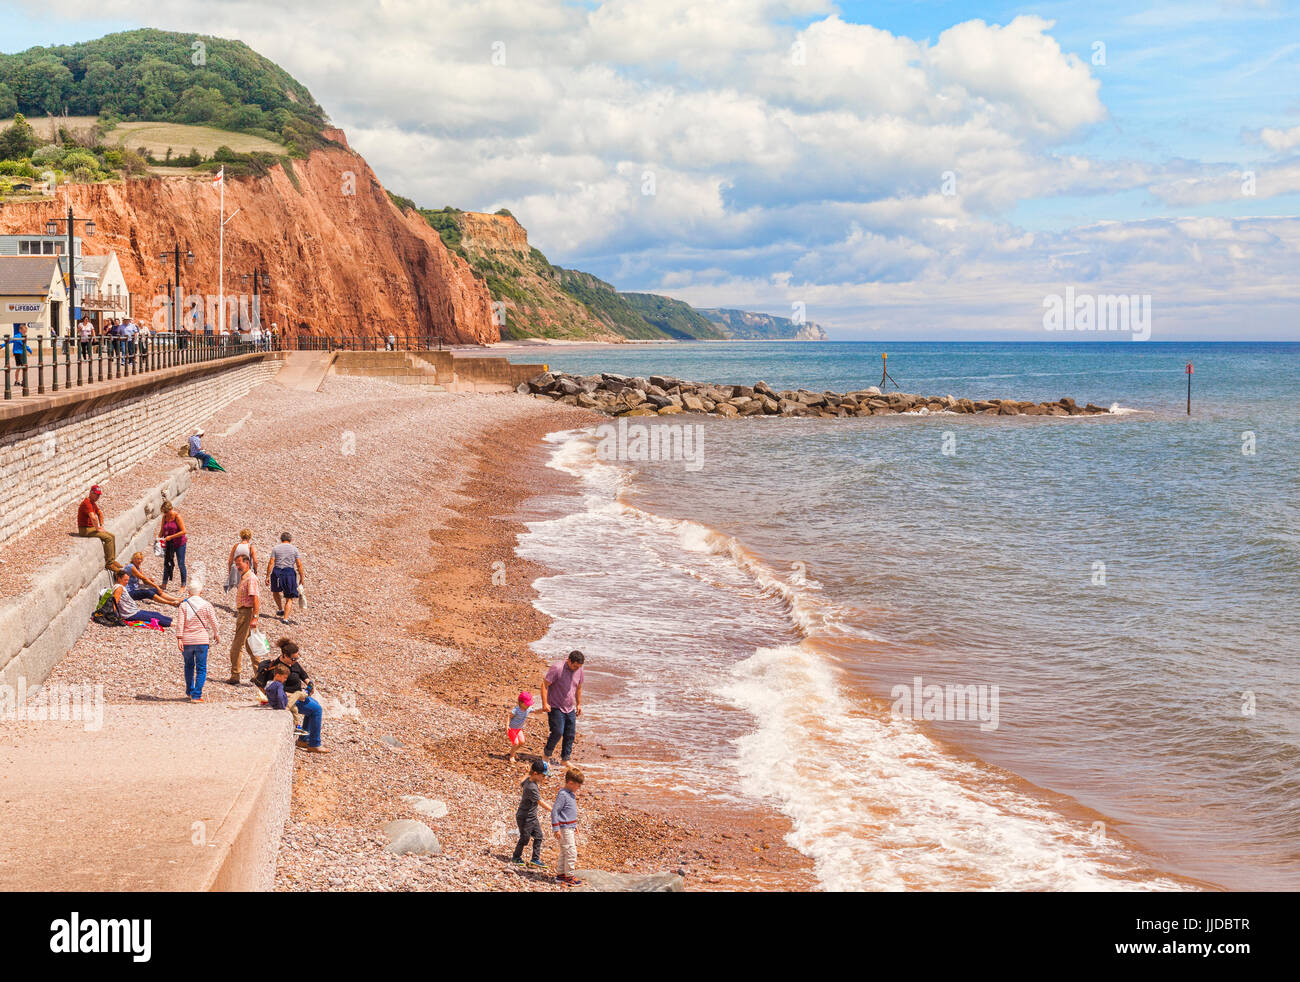 3 July 2017: Sidmouth, Dorset, England, UK - Visitors on the shingle beach on a bright summer day. - Stock Image